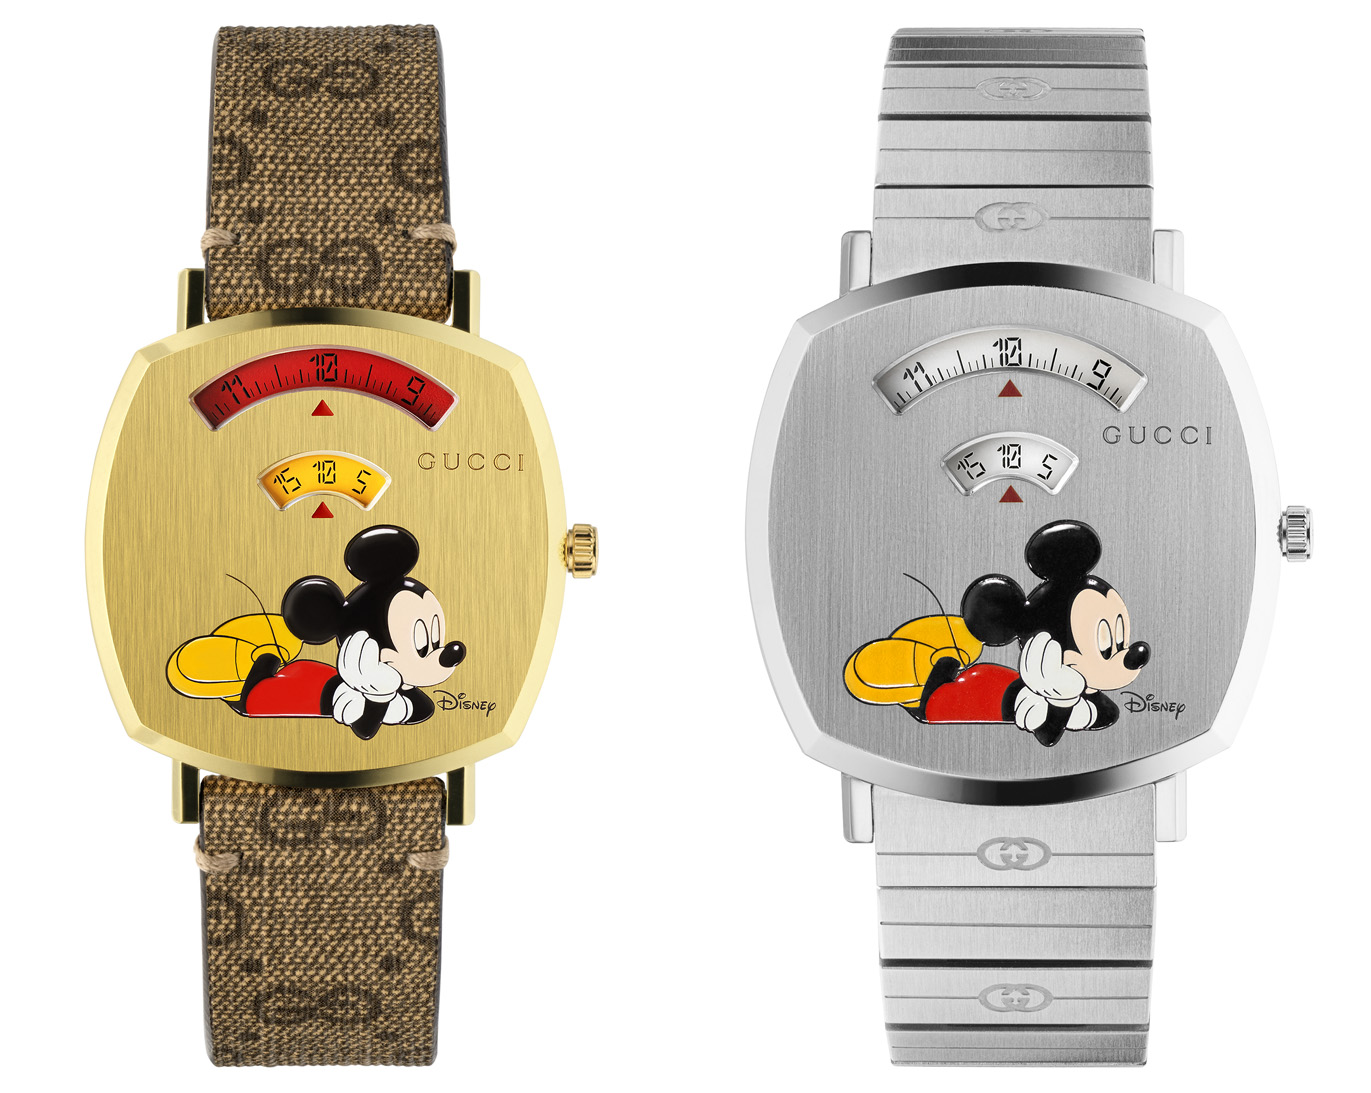 Gucci honours the Chinese Year of the Rat by putting Mickey